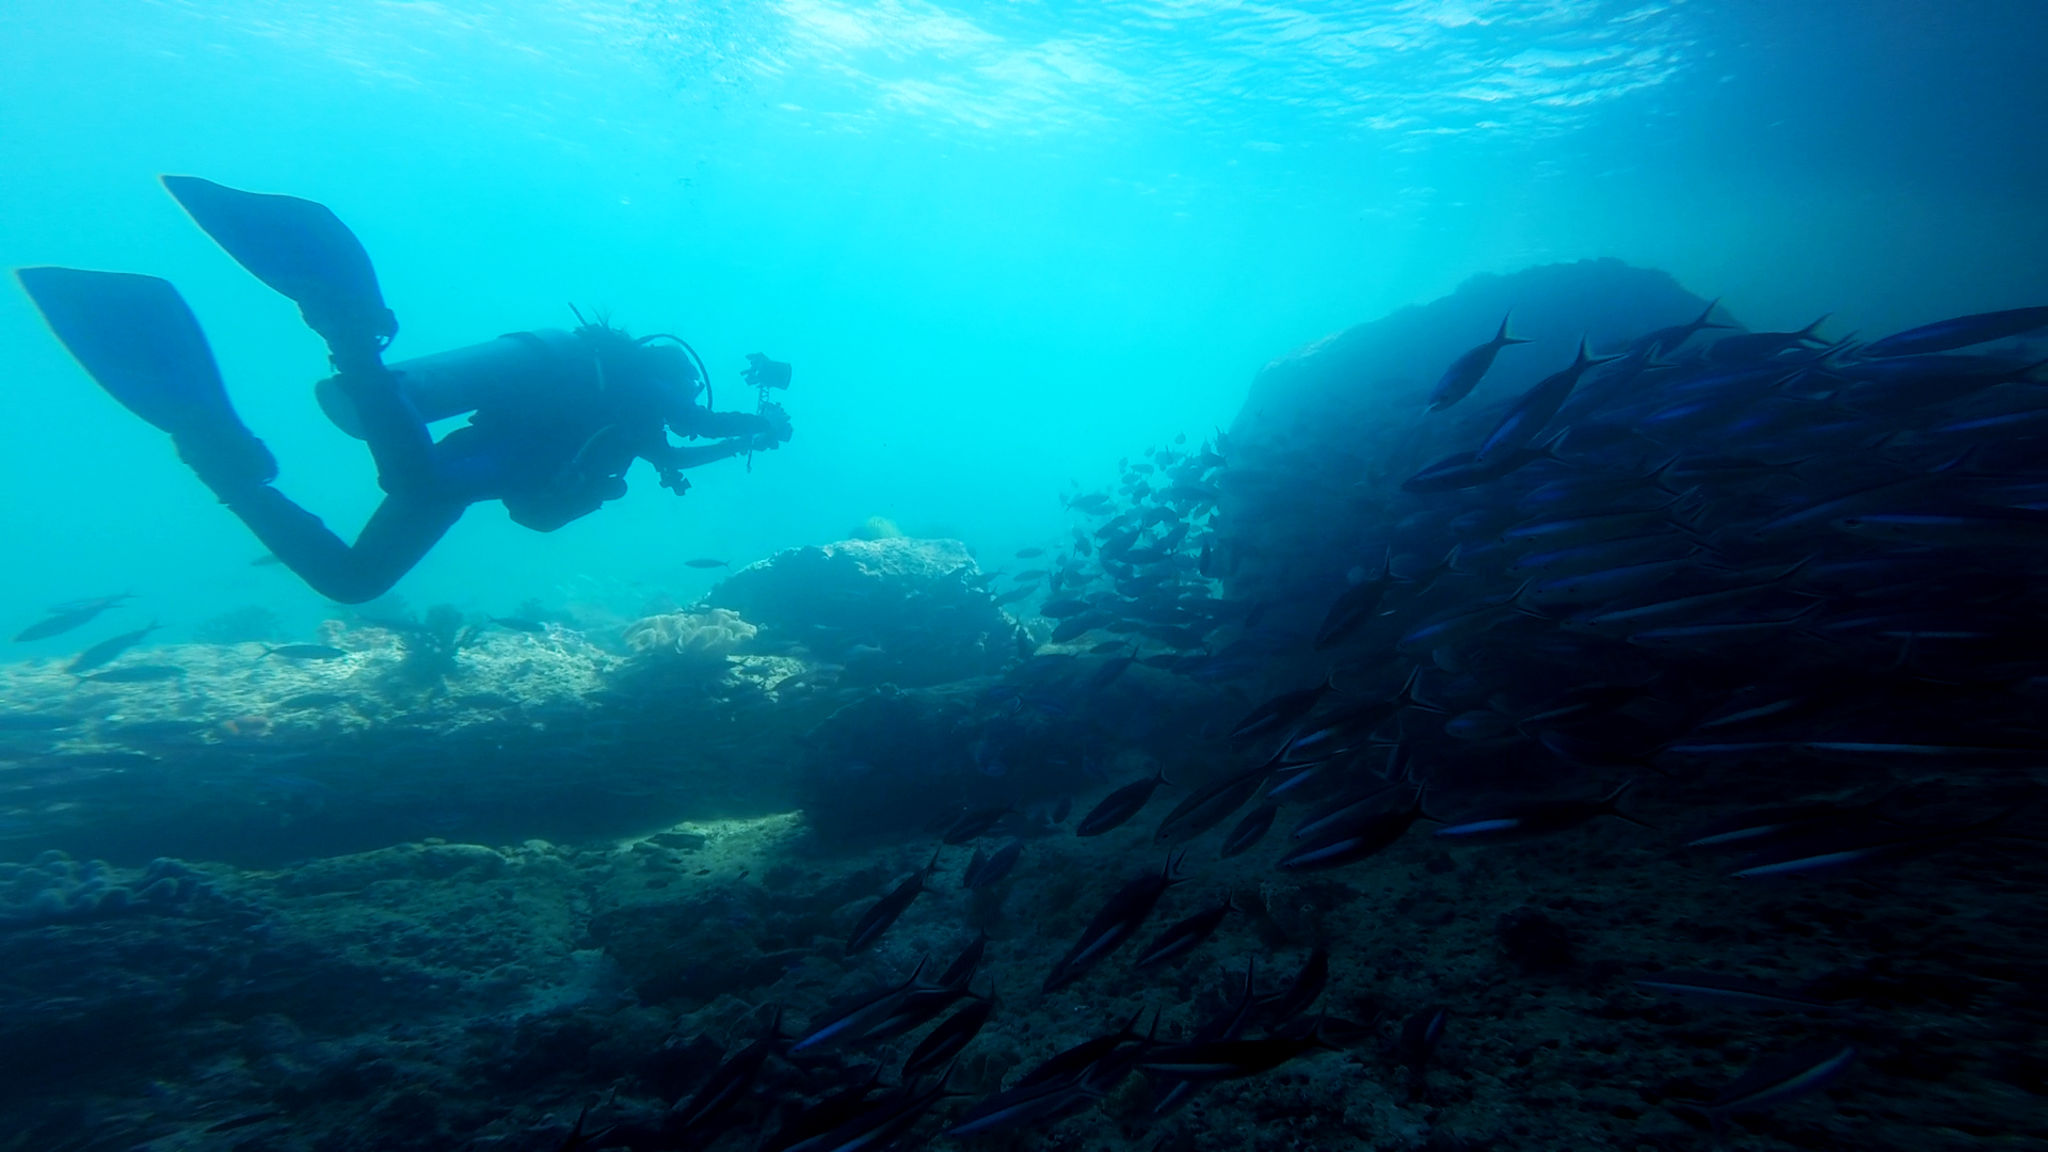 List of Scuba-diving sites